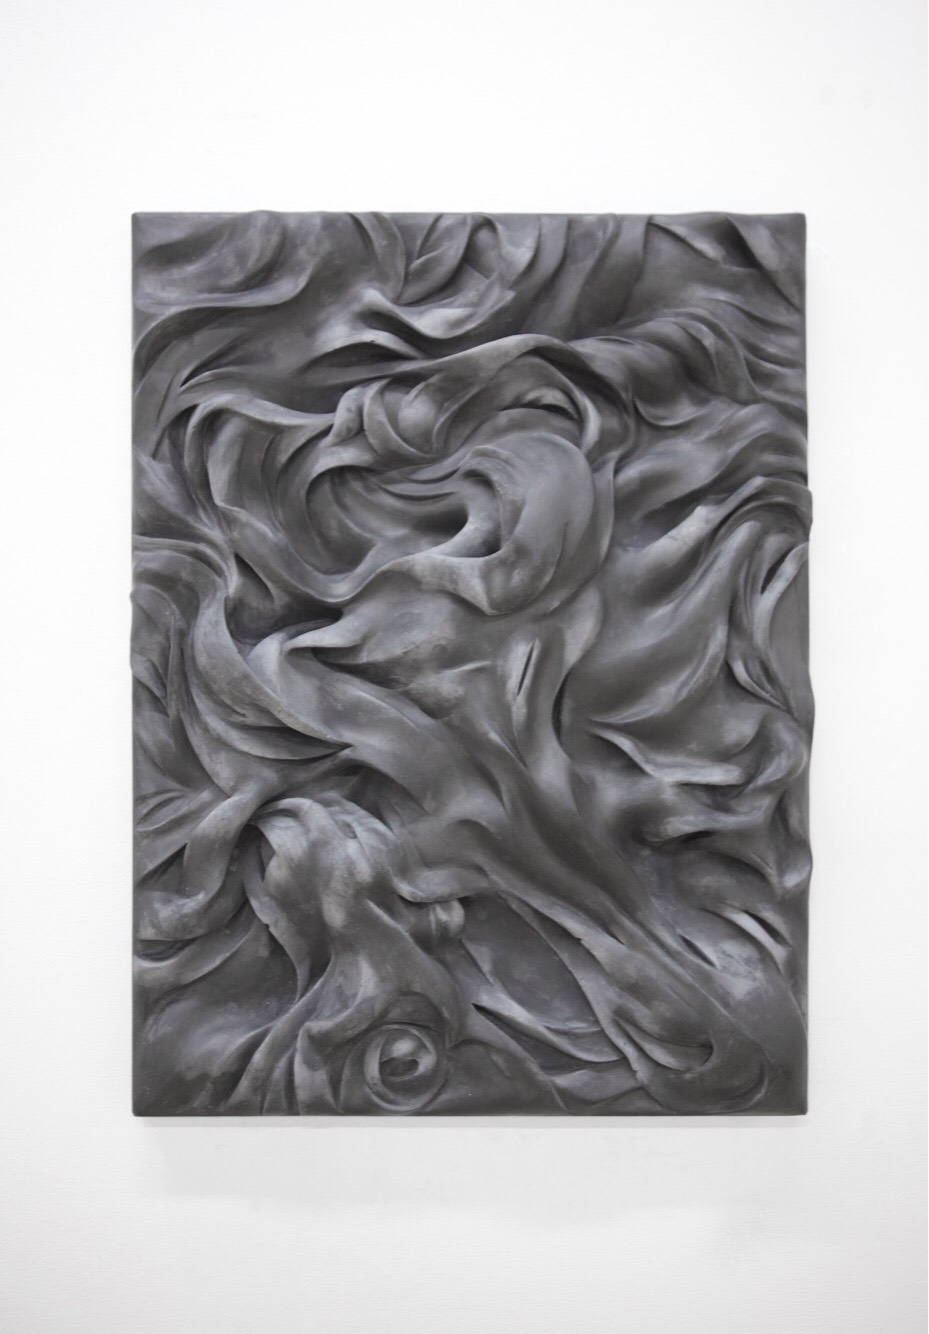 "Xavier Robles de Medina, ""In the realm of translation"", 2018, graphite and plaster, 44 x 33 x 6 cm"